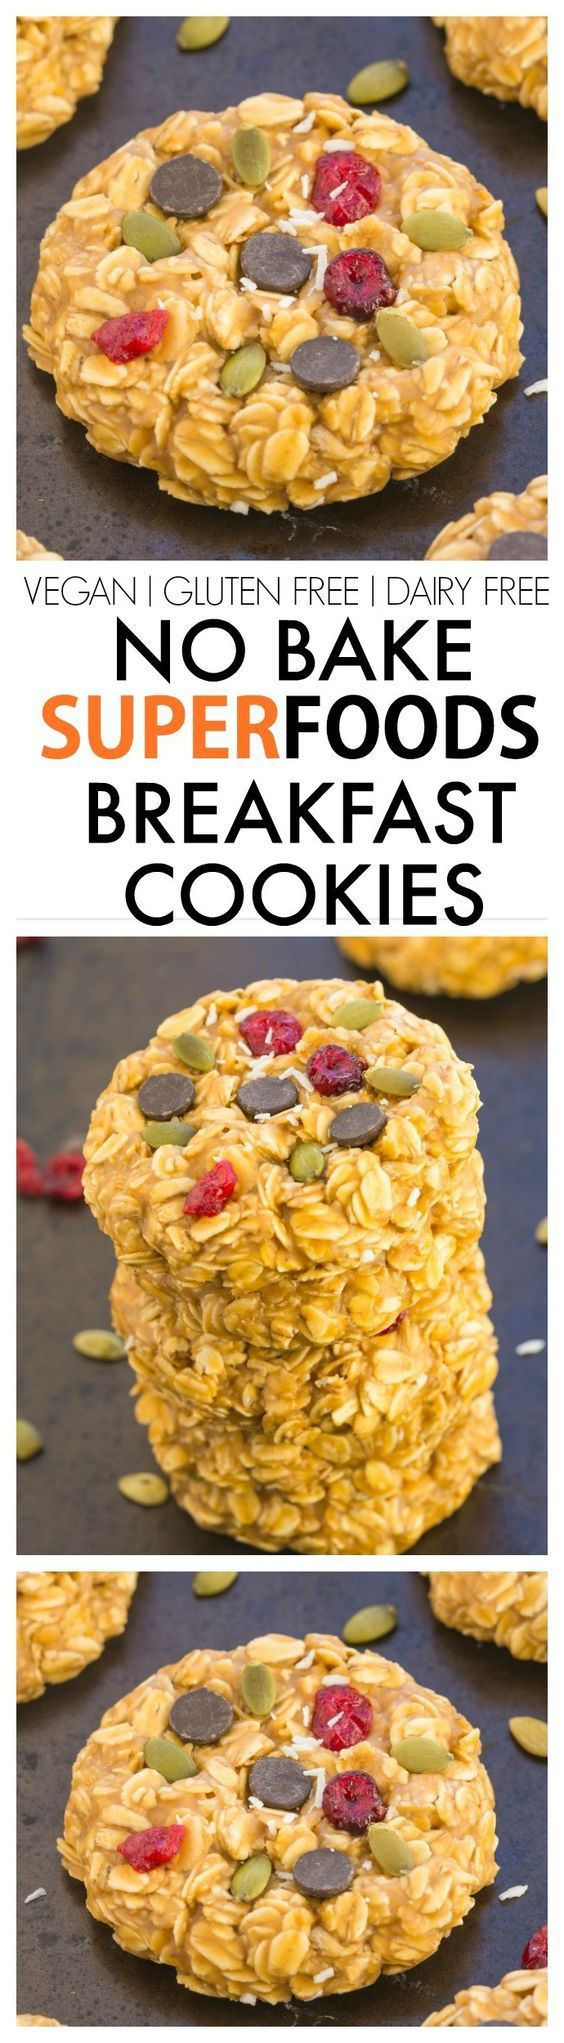 Healthy Snacks - No Bake SUPERFOODS Breakfast Cookies Recipe - Vegan - Gluten-Free - Dairy-Free Treats via The Big Man's World